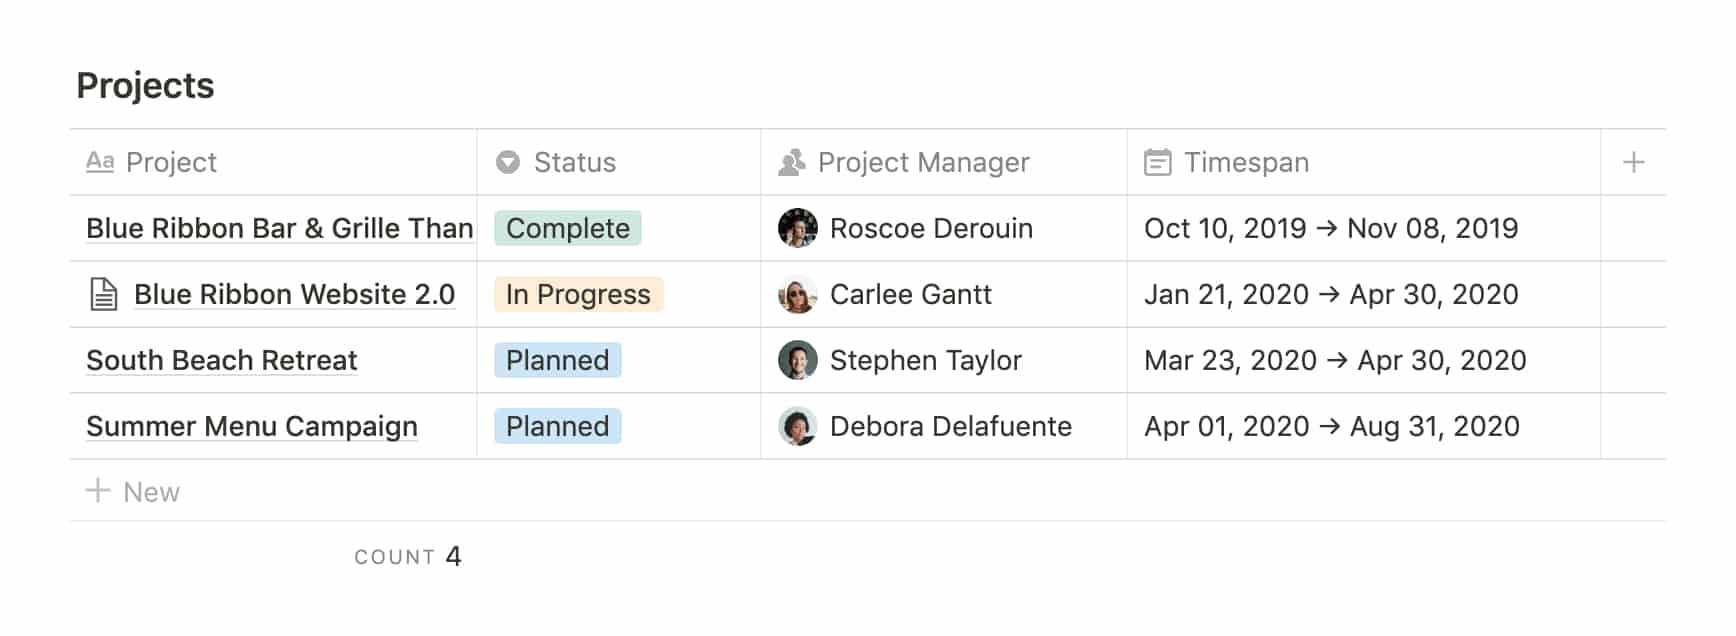 Notion Database: Projects